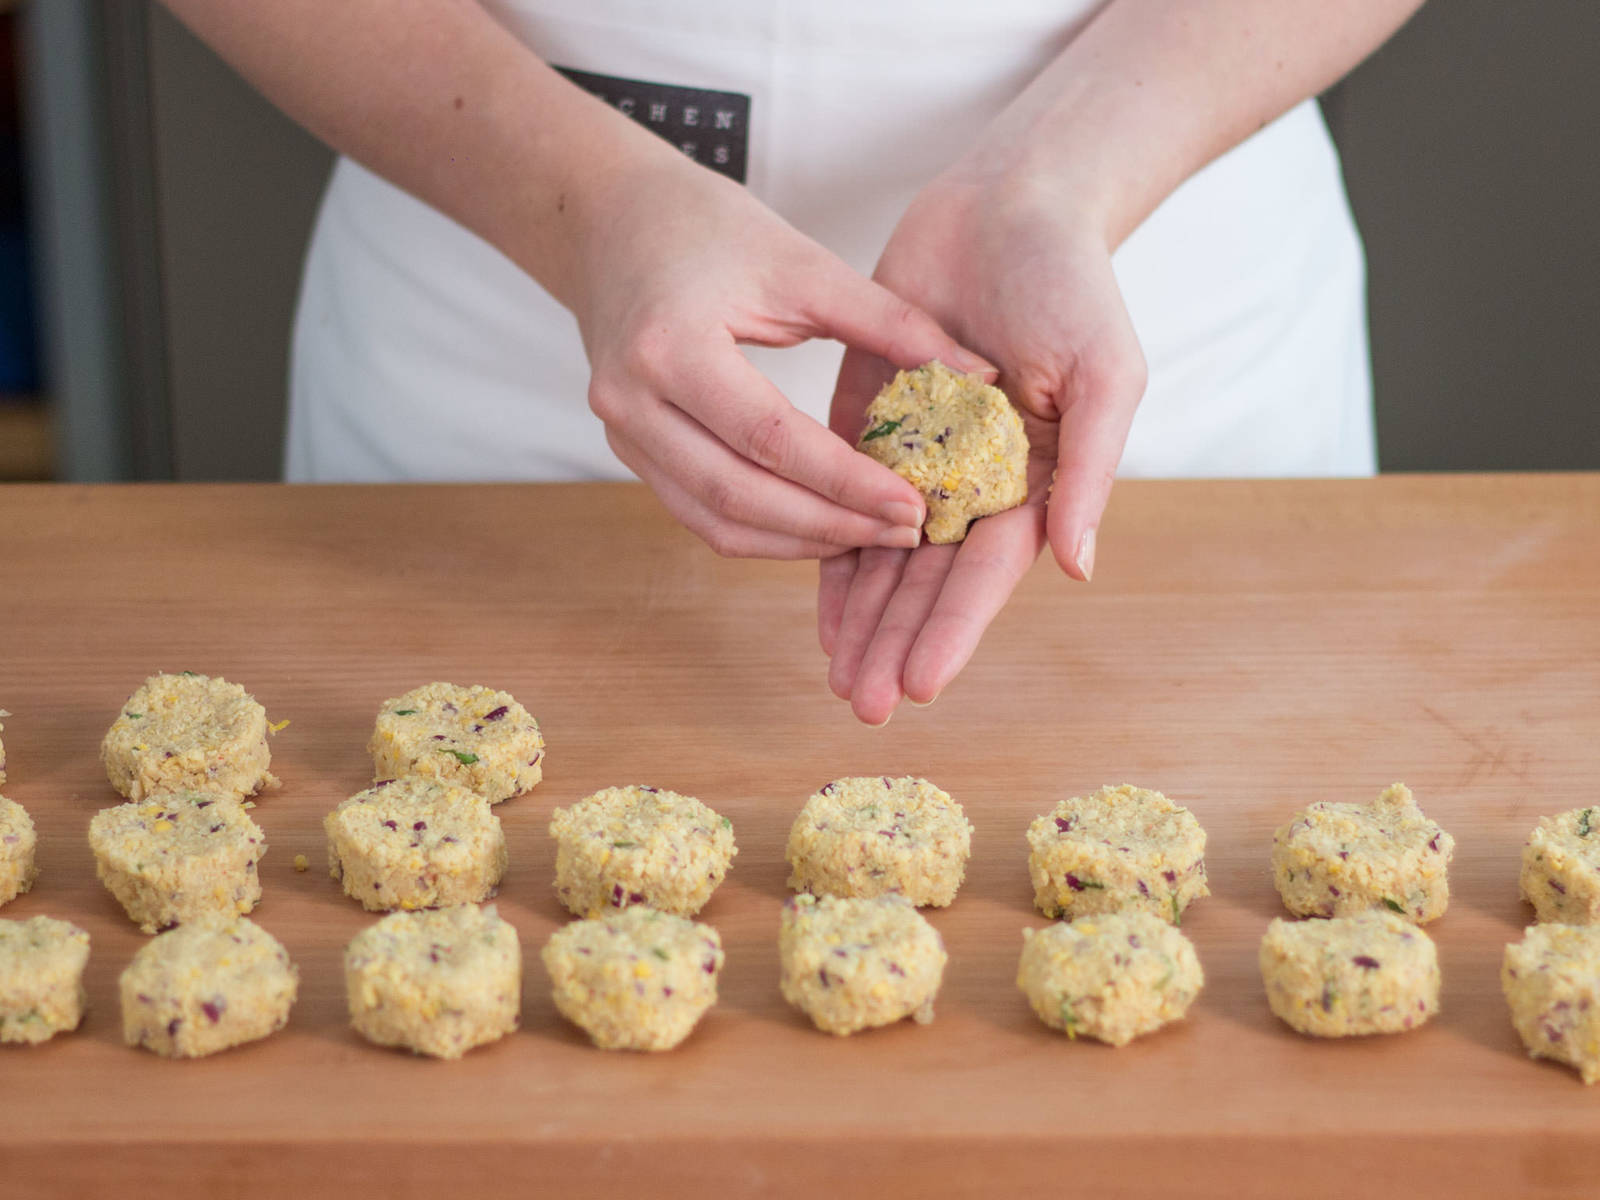 Using your hands, form mixture into small disc-shaped patties.